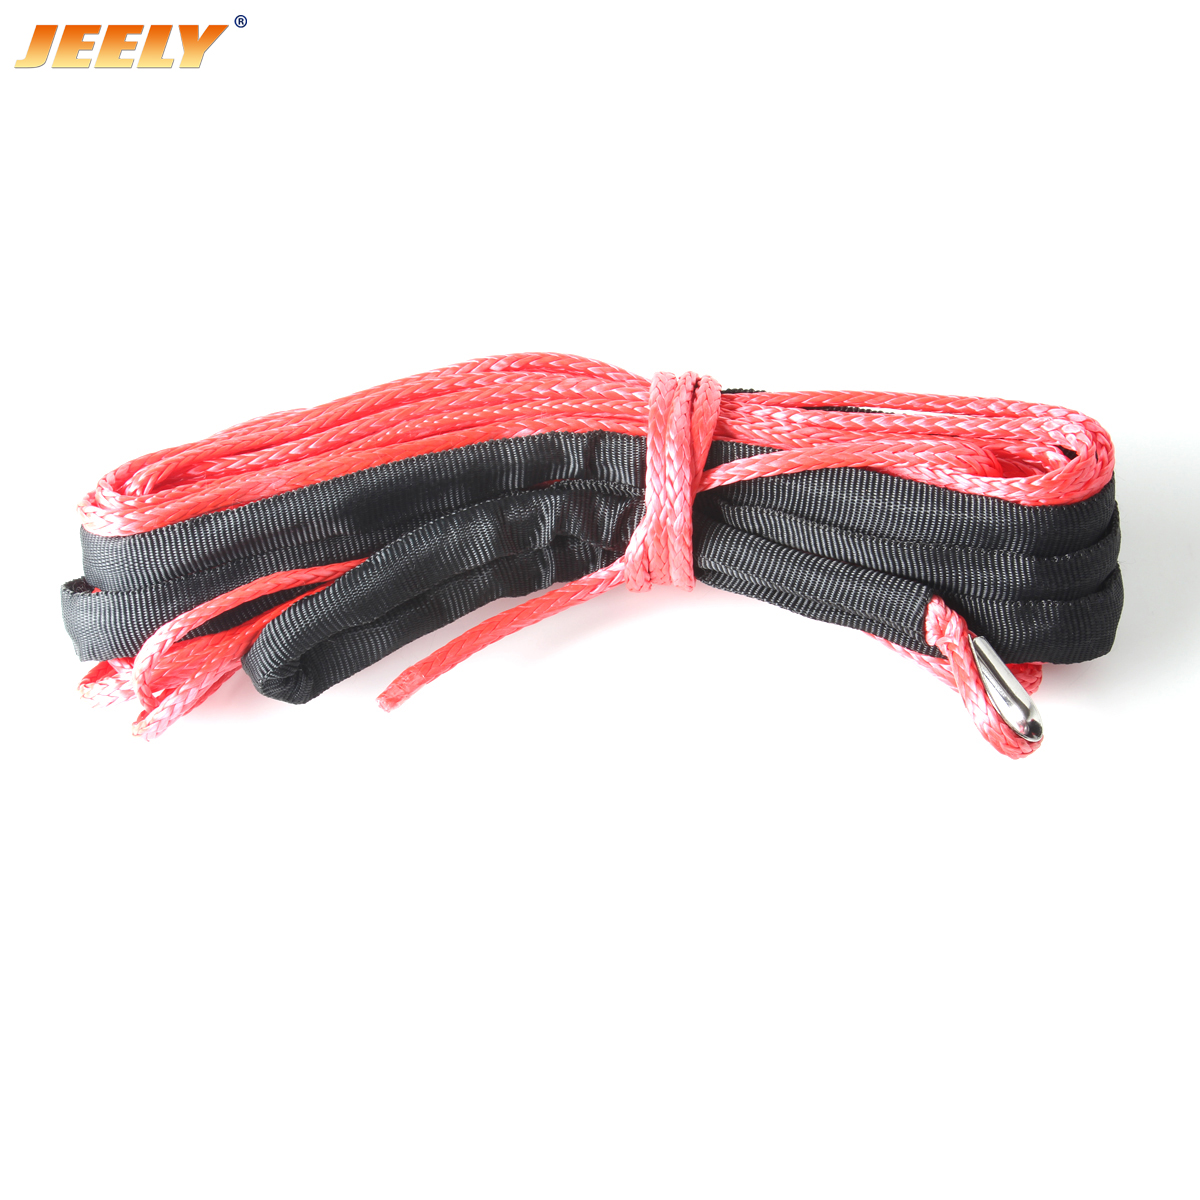 10mm*40m UHMWPE Winch Rope with Thimble Synthetic Cord for Off-road ATV/UTV/SUV/4X4/4WD